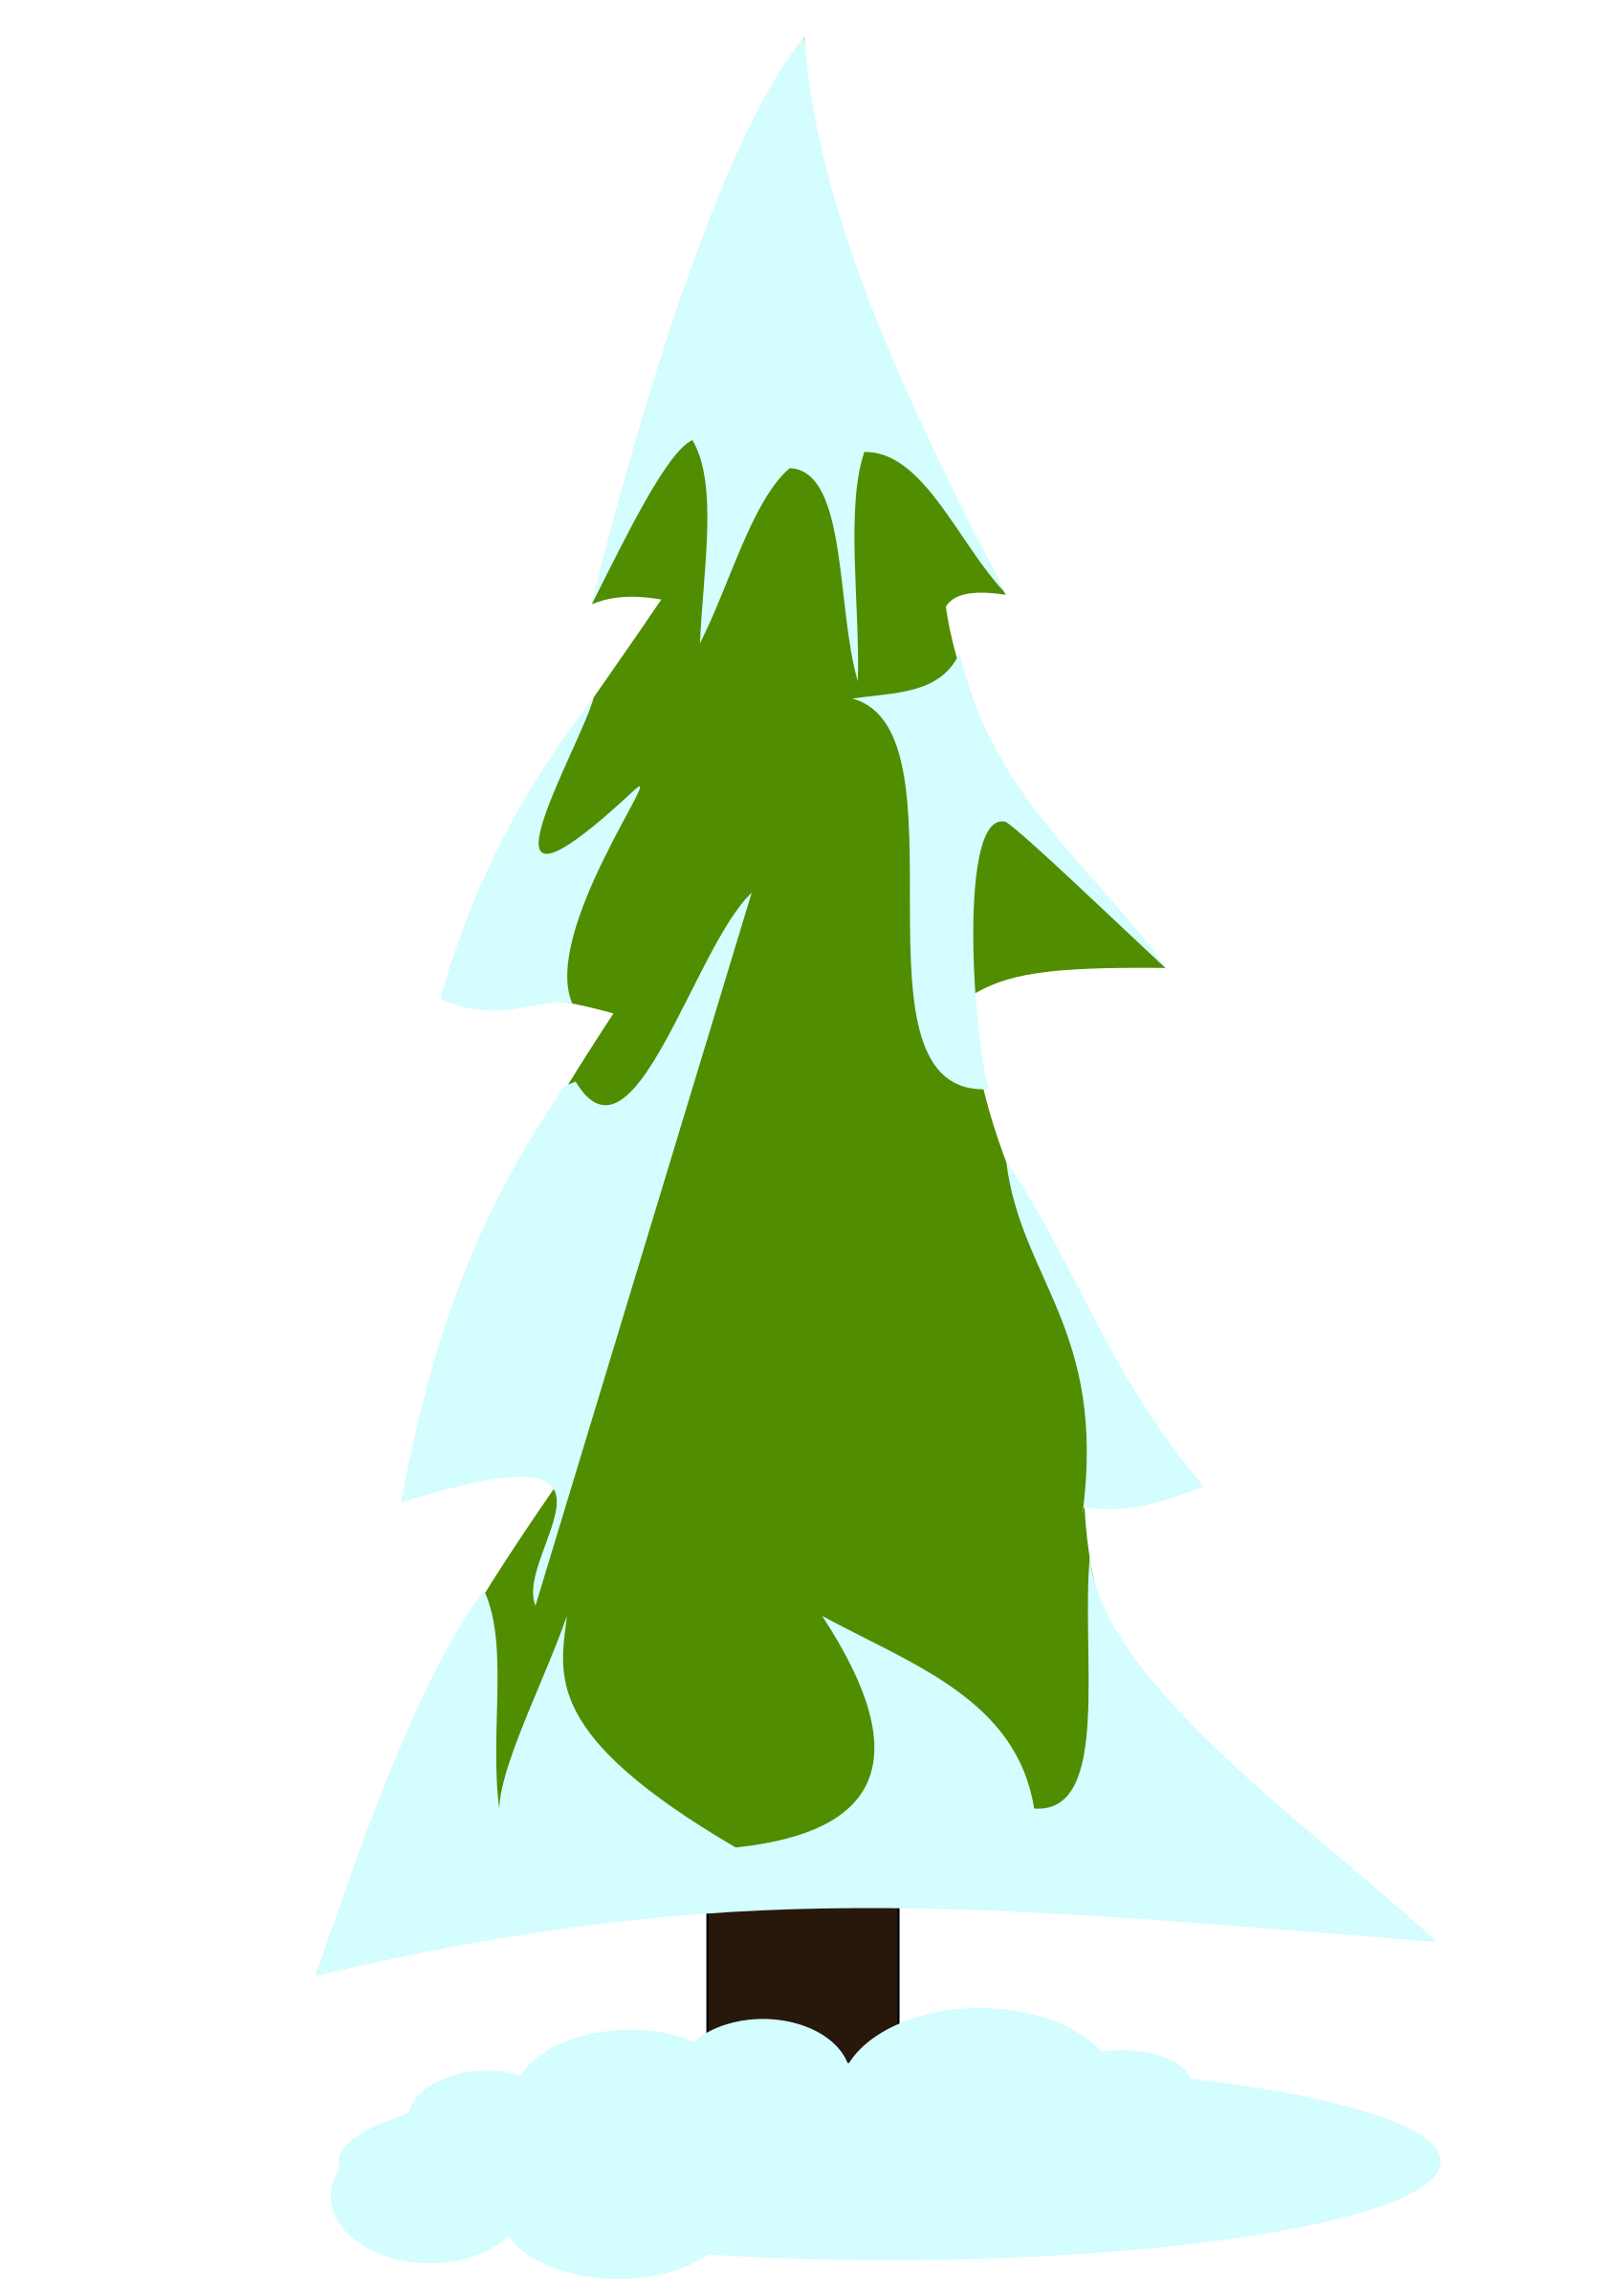 Clipart - Snowy pine tree